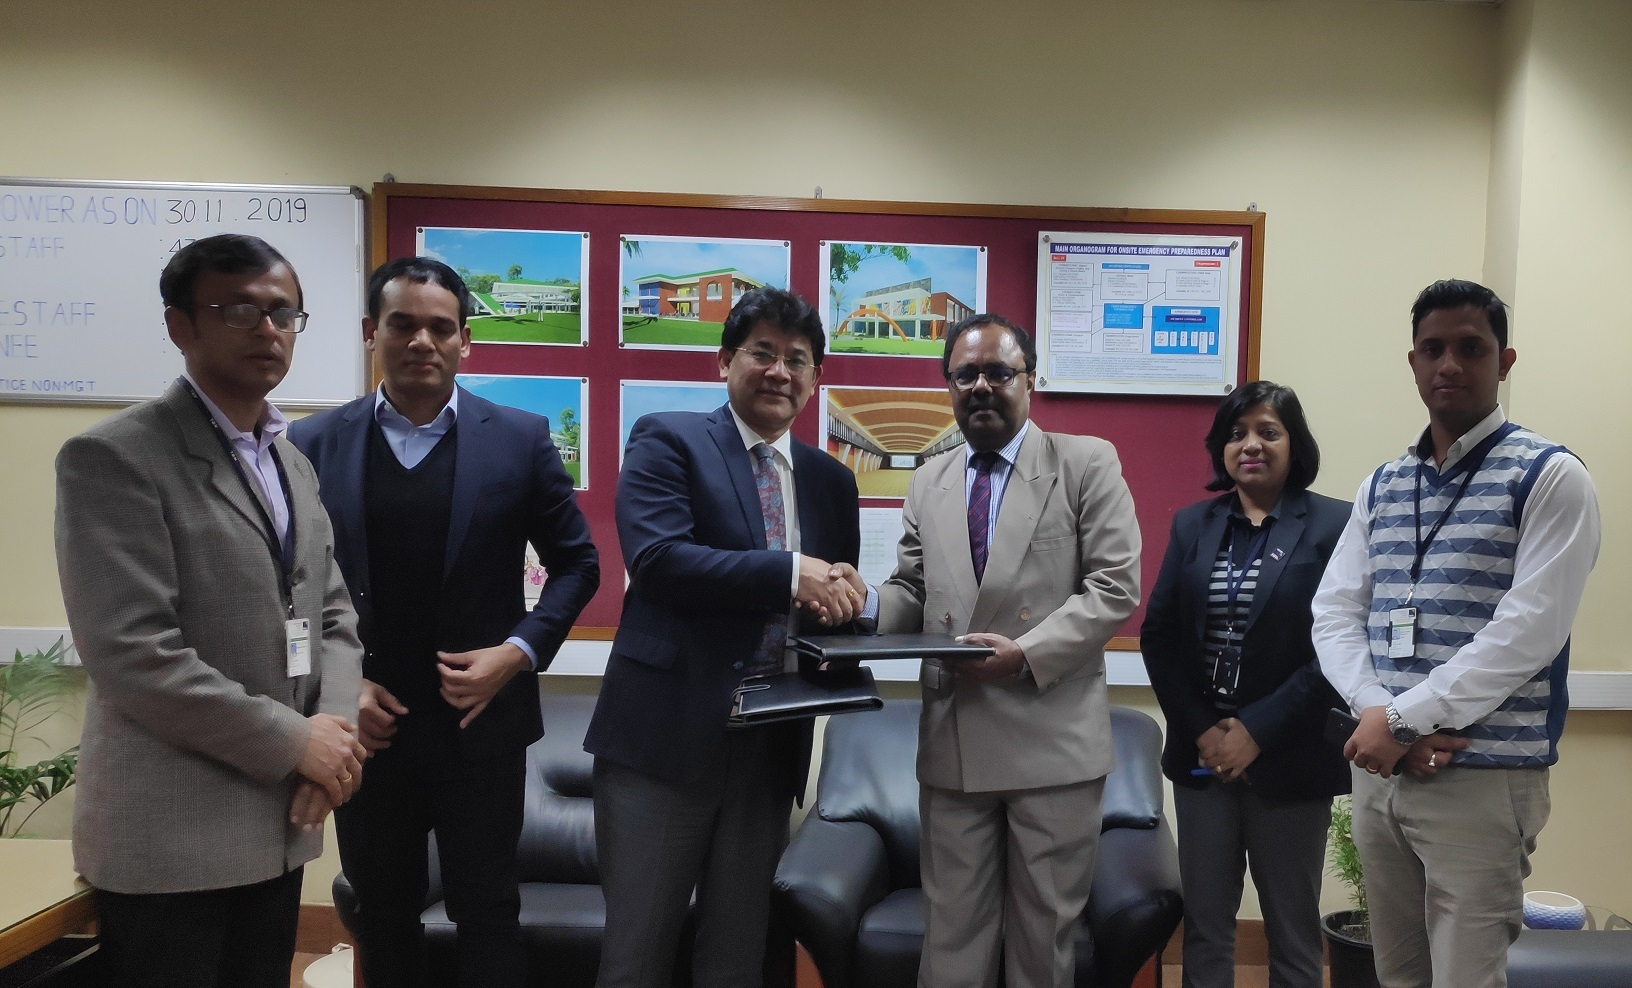 NRL signs MoU with Assam Cancer Care Foundation